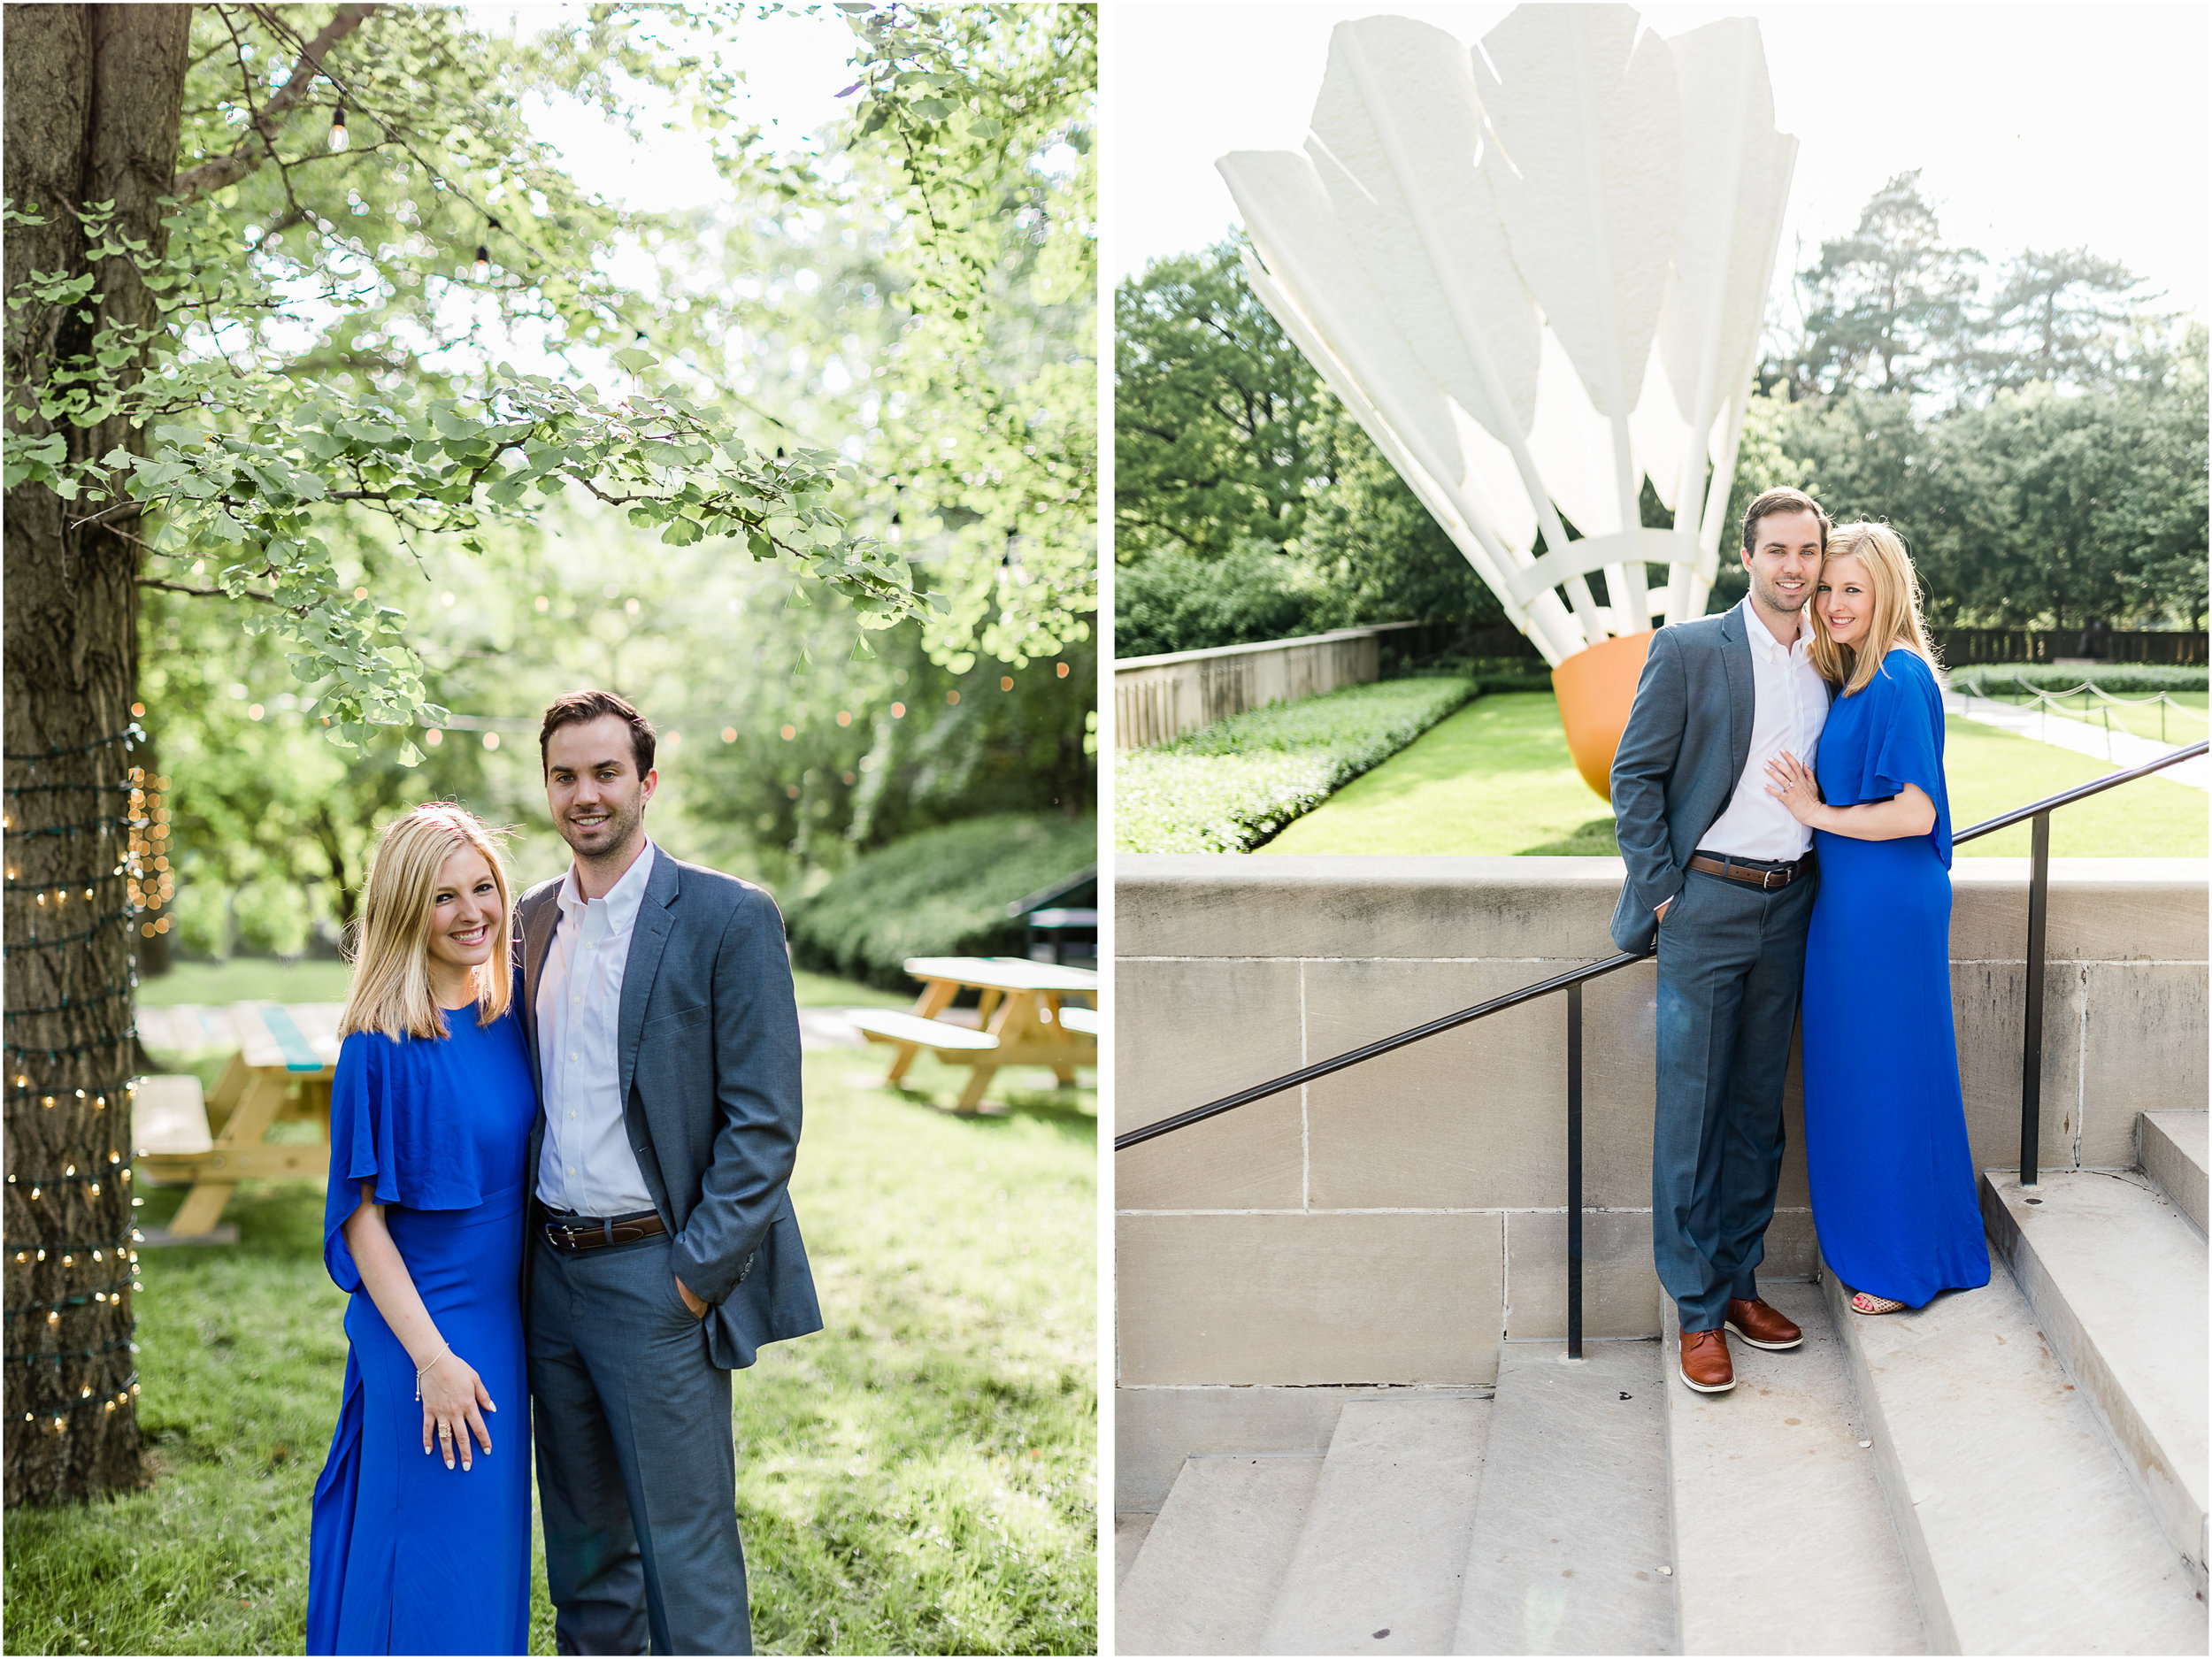 nelson atkins kc engagement photos 10.jpg